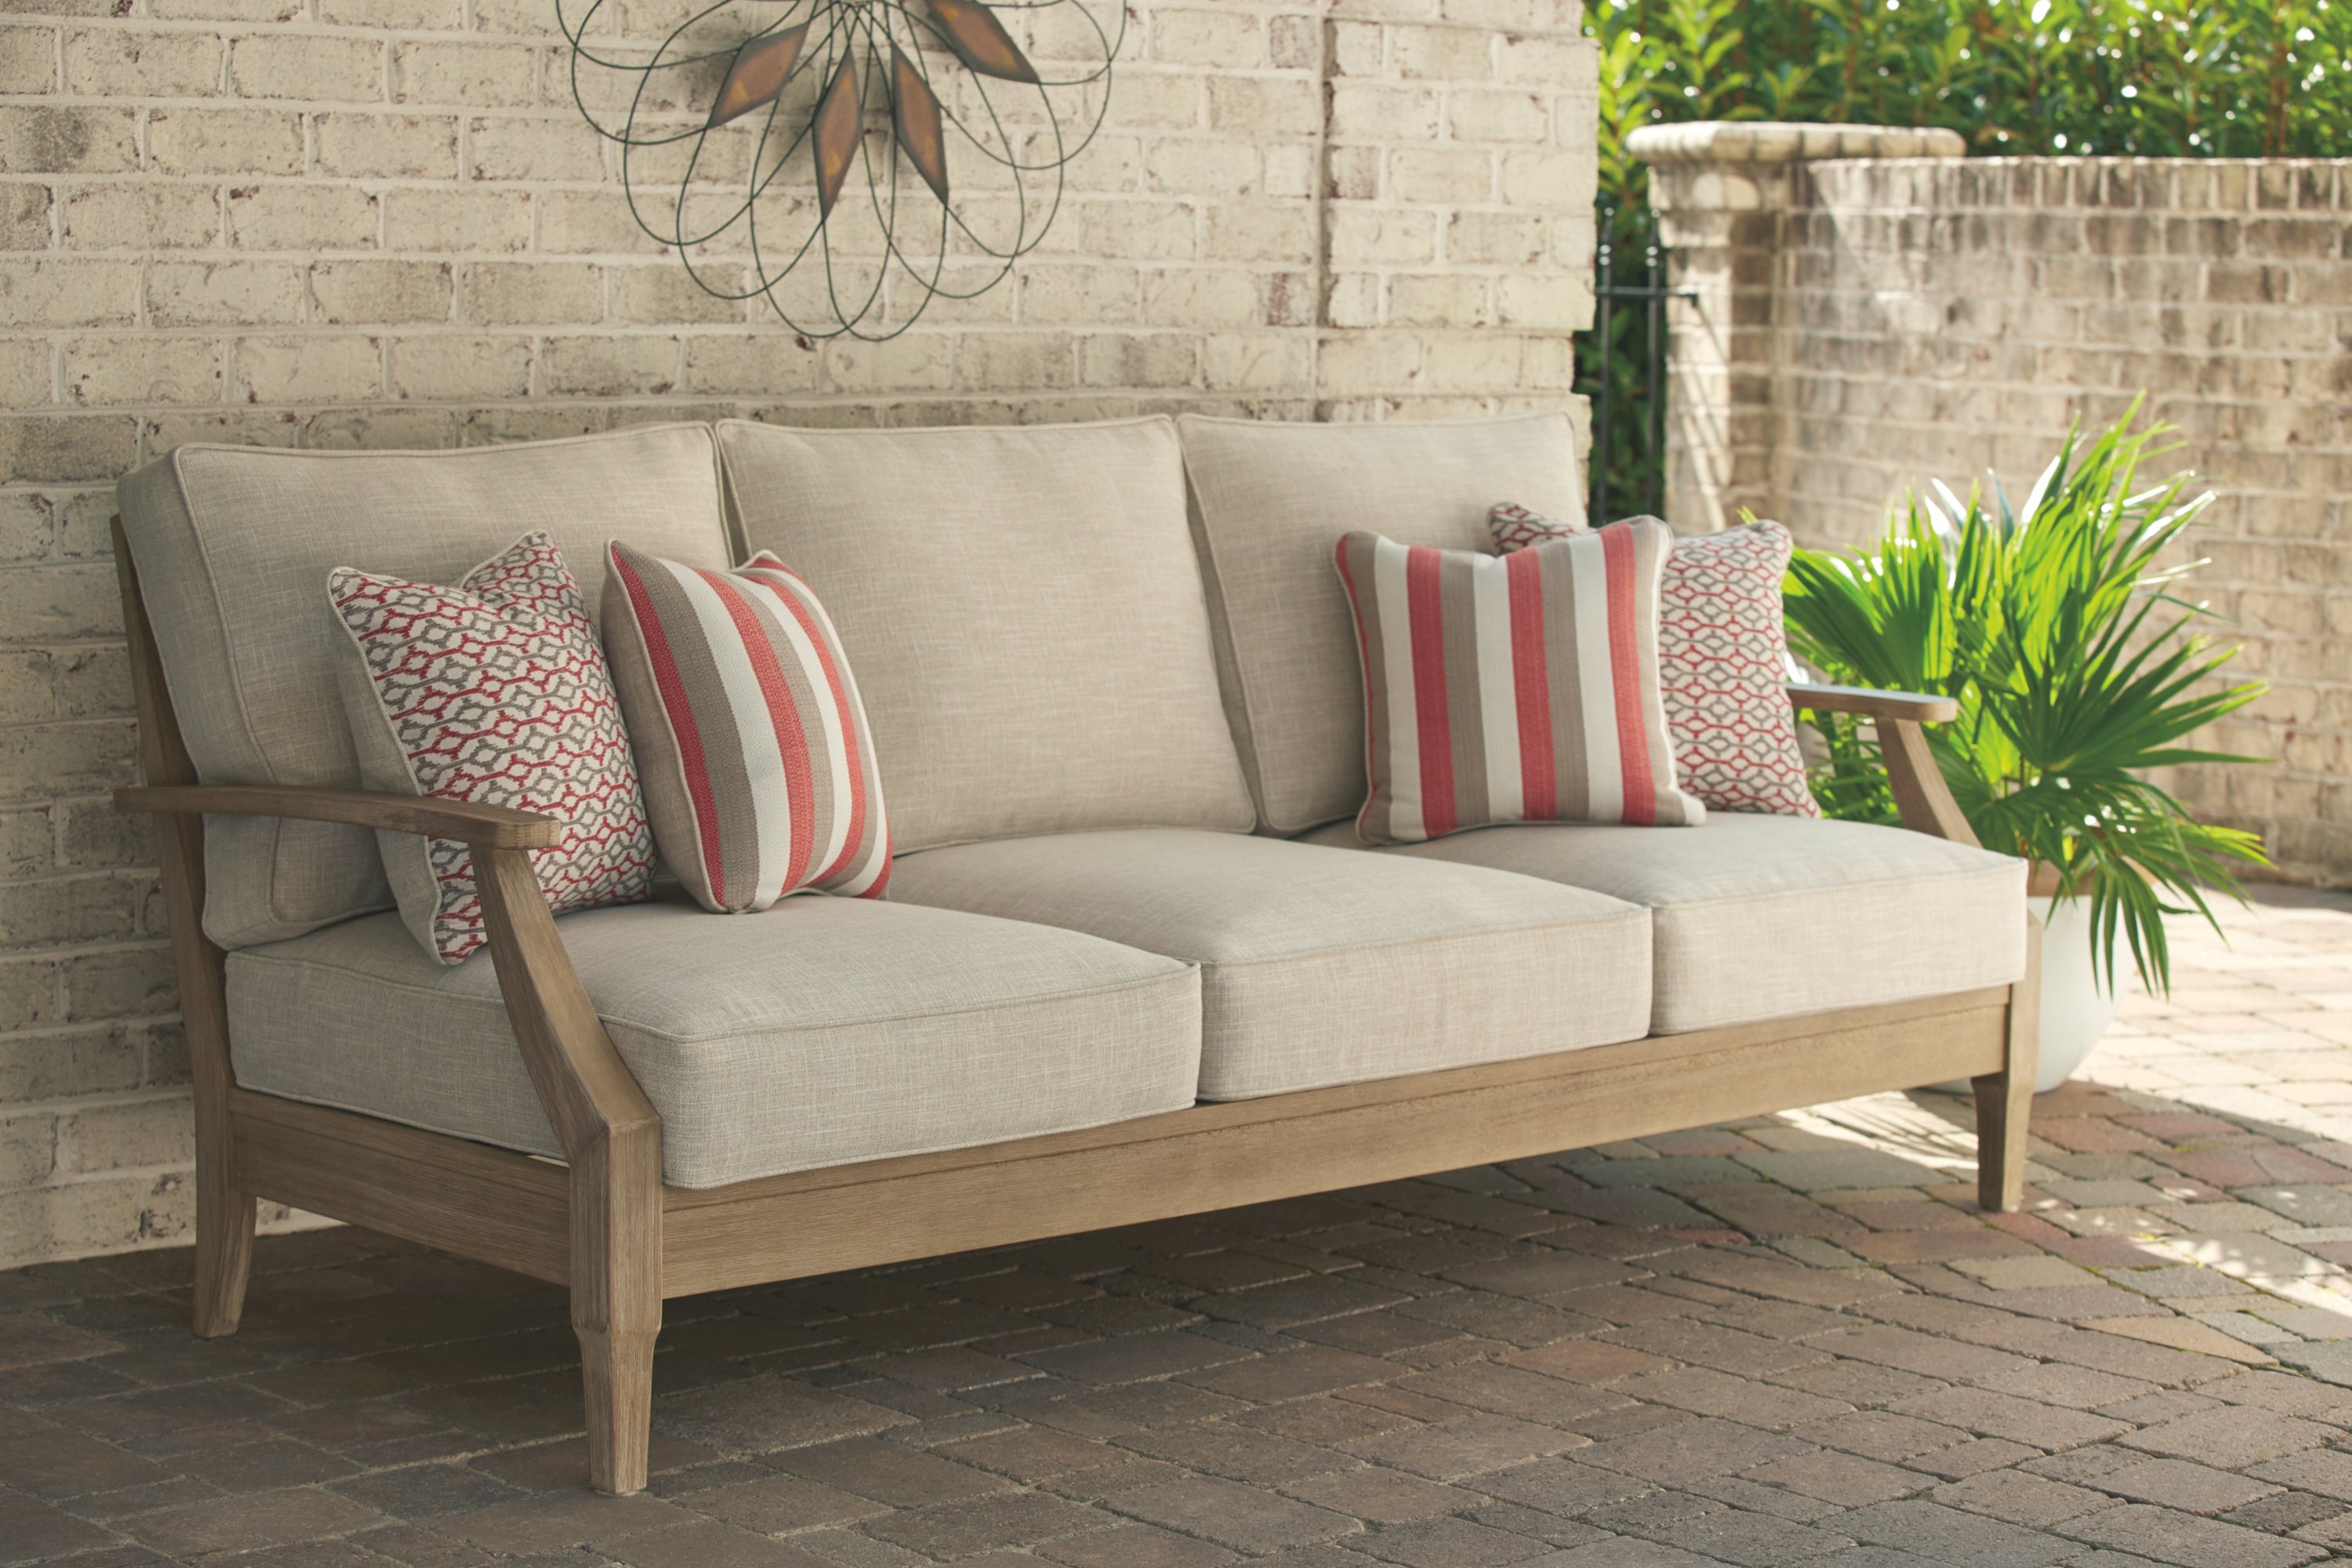 Anguiano Patio Sofa With Cushions Inside Most Current Keever Patio Sofas With Sunbrella Cushions (View 5 of 20)